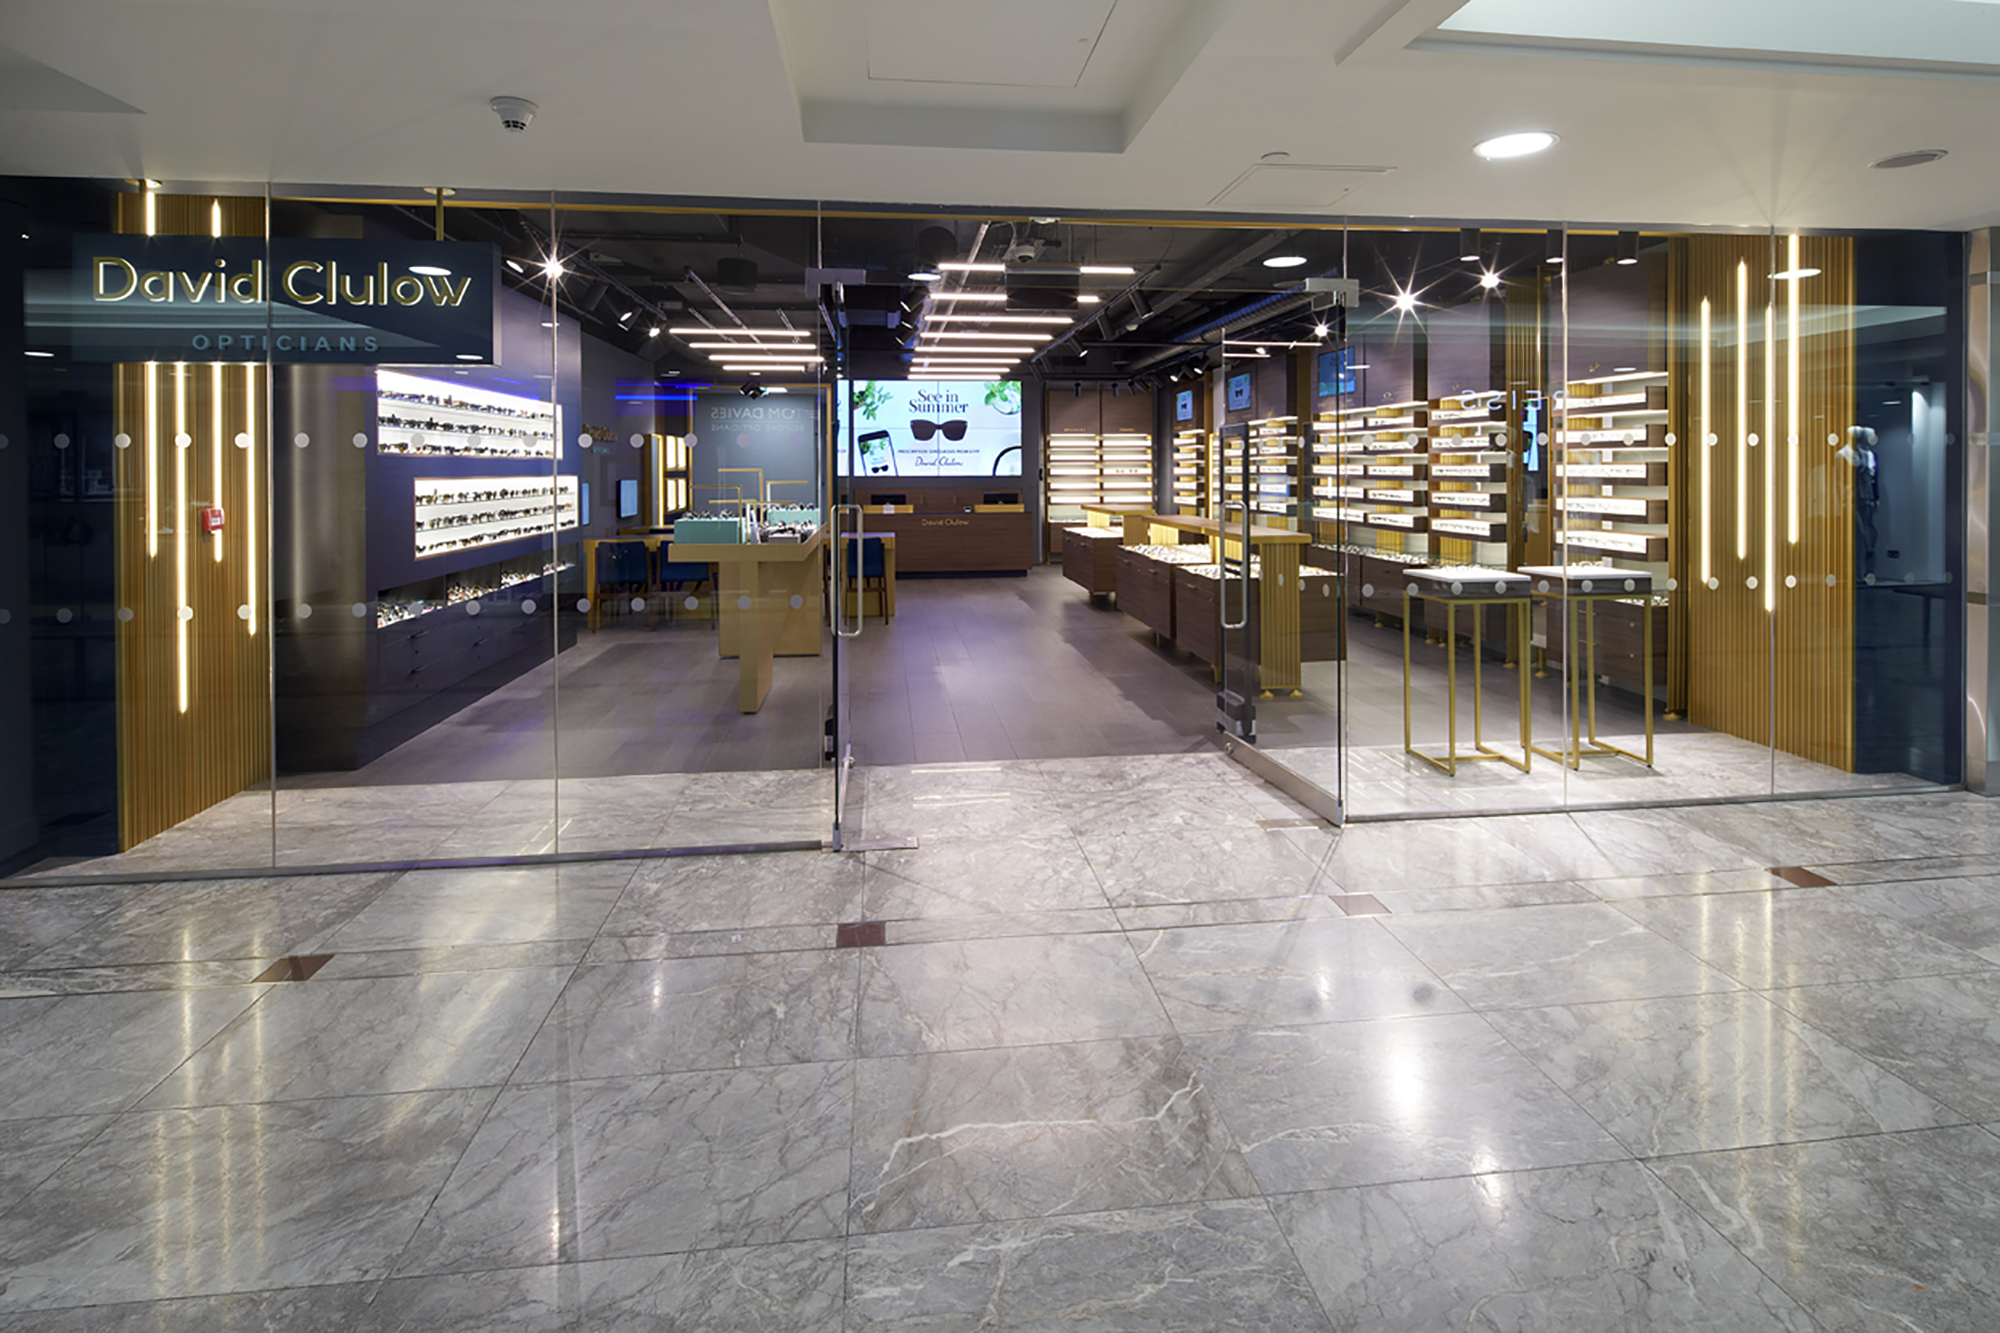 David Clulow combines luxury with rigorous and professional eyecare